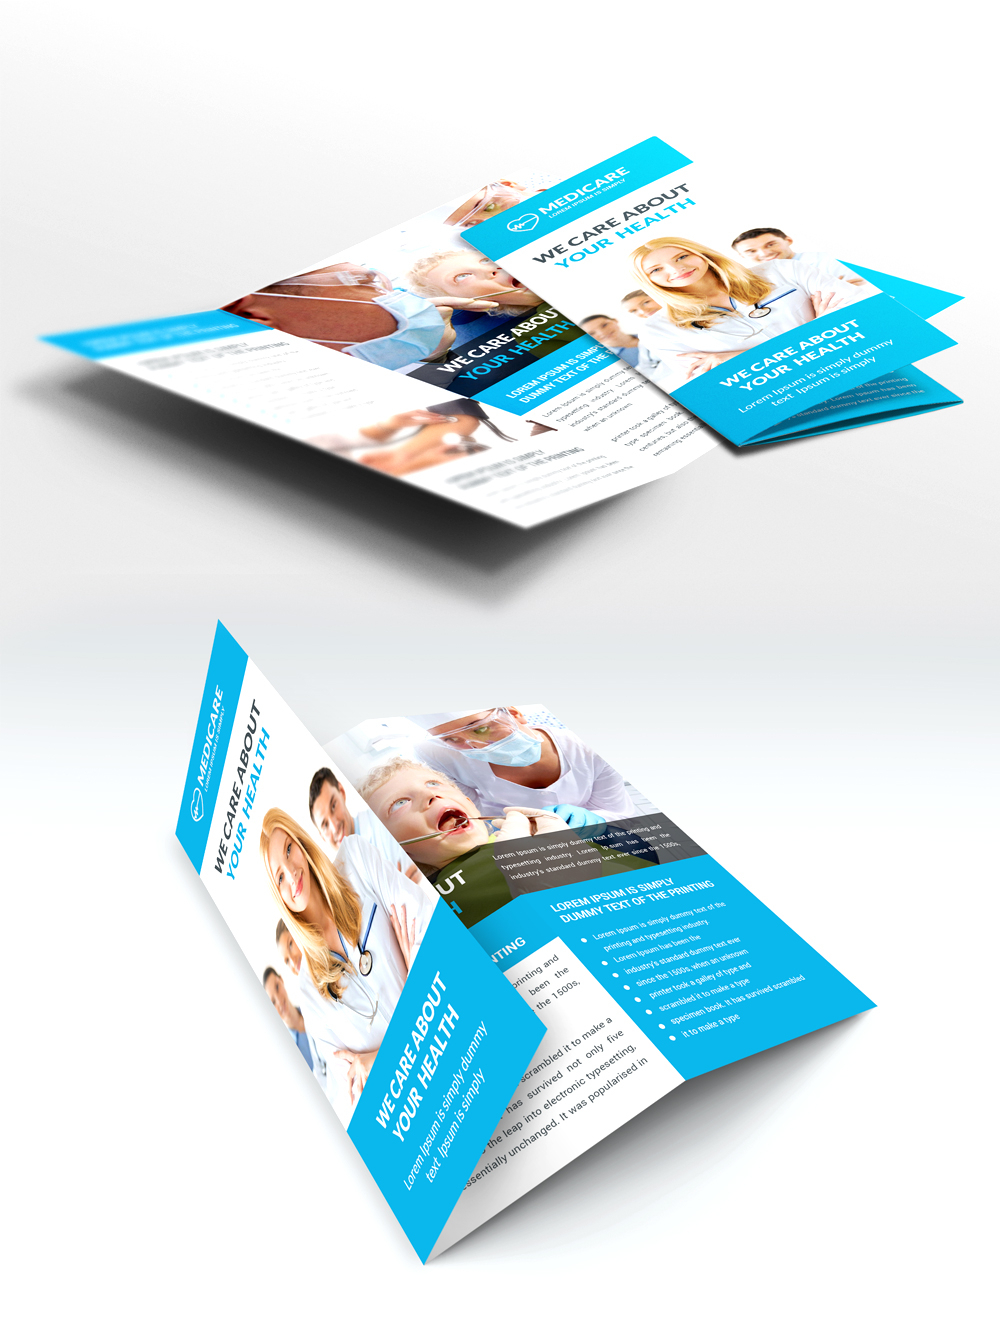 Medical Care And Hospital Trifold Brochure Template Free Psd Pertaining To Medical Office Brochure Templates